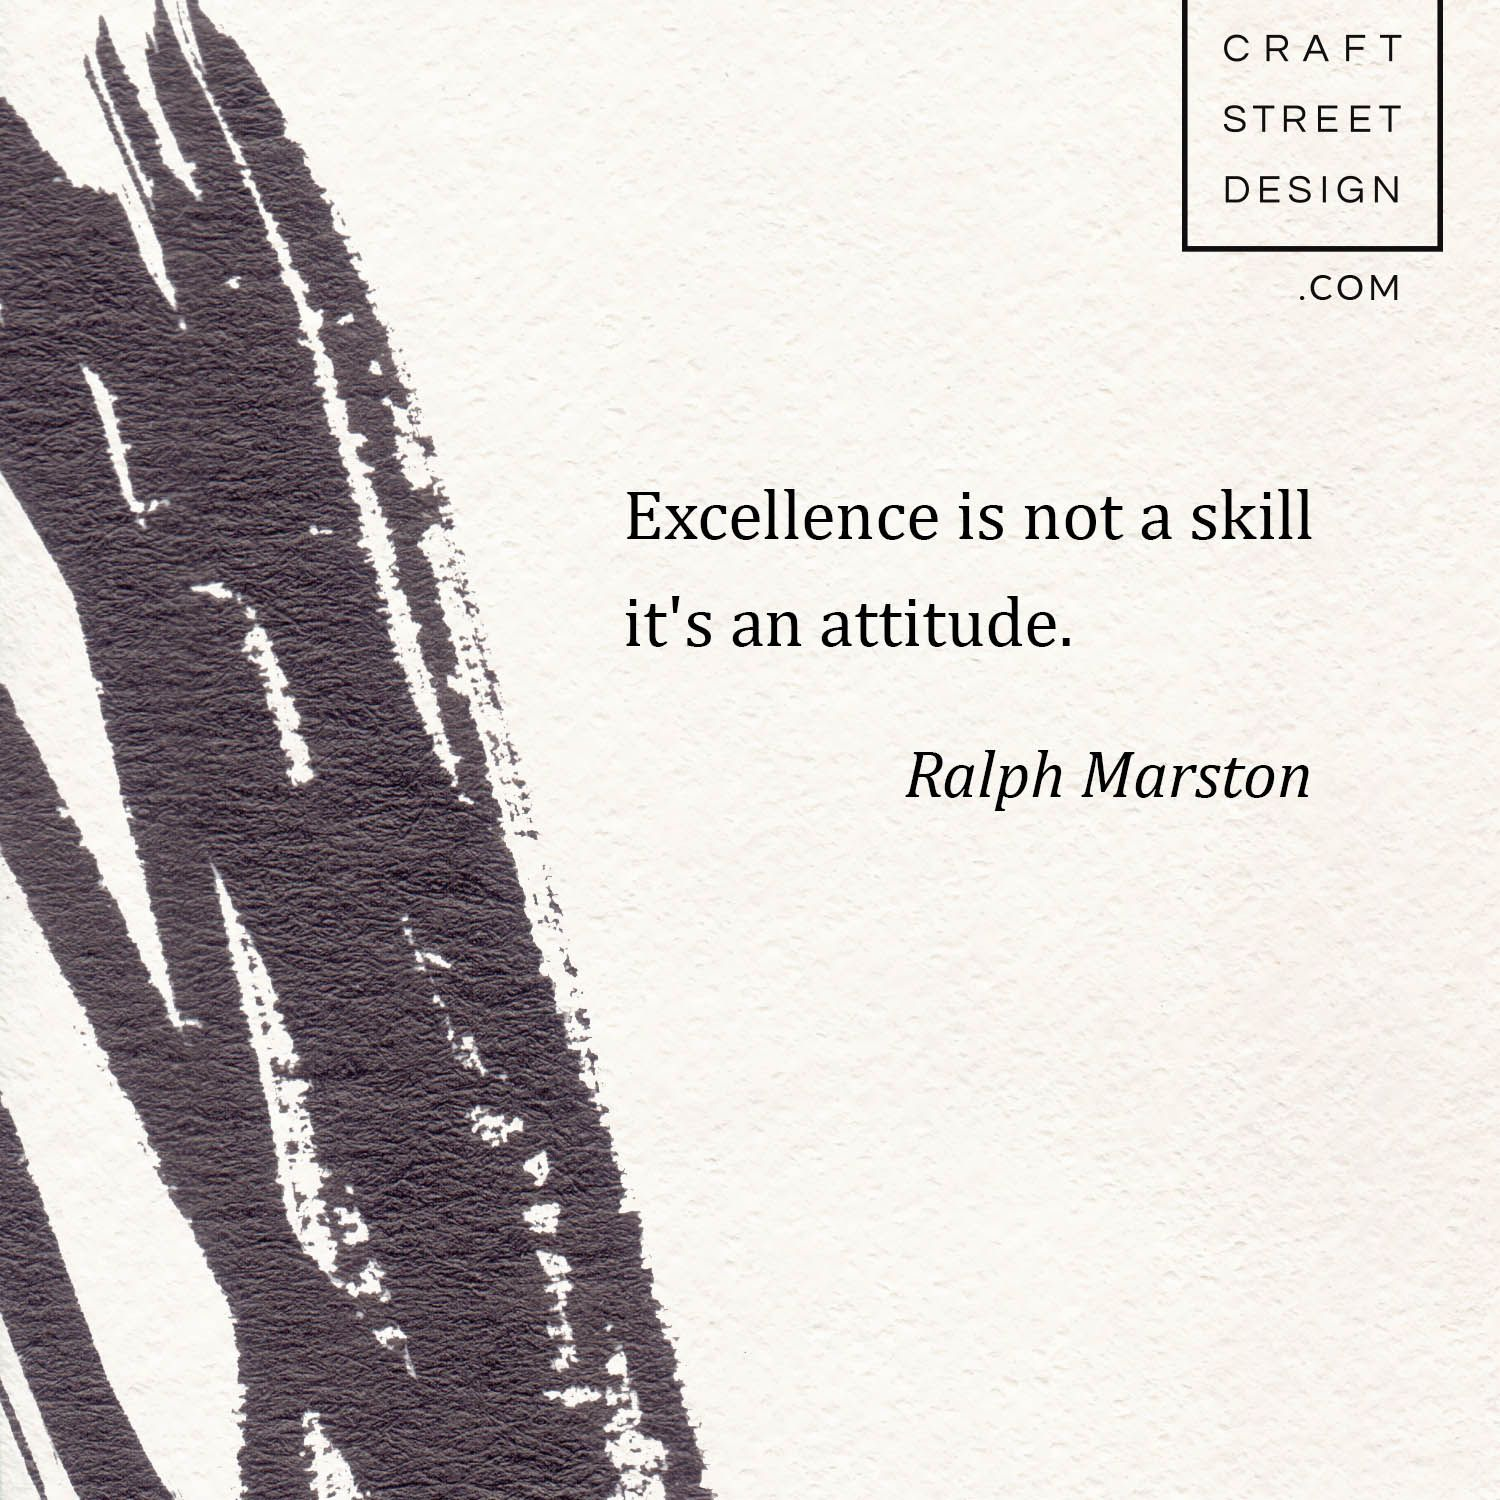 Excellence is not a skill it's an attitude Ralph Marston